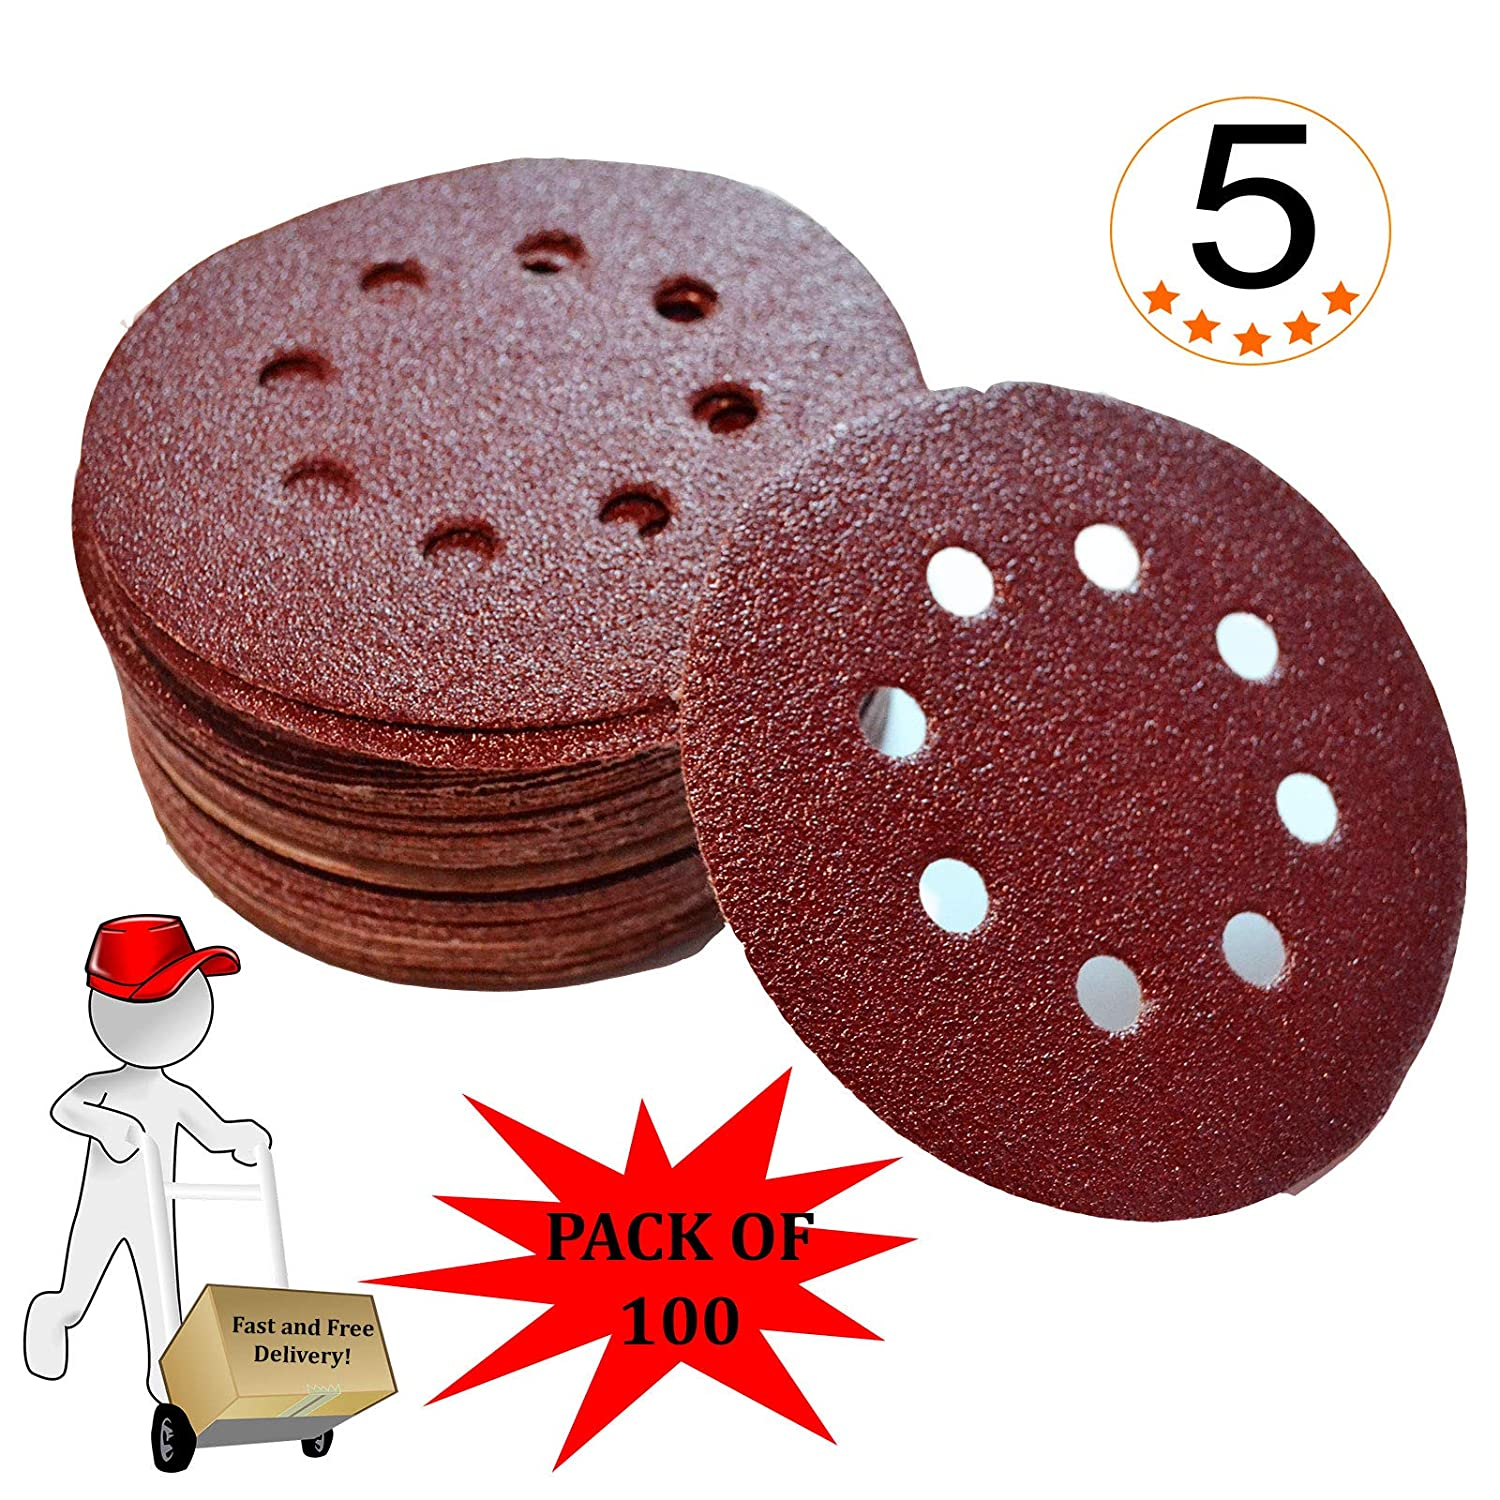 125mm 5' Sanding Discs Orbital Sander p60 Grit Pack of 100 - Other Grit Available p40, 60, 80, 120, 240, 320, 400, 600, 800 - Ask for Mixed Pack During Checkout. China